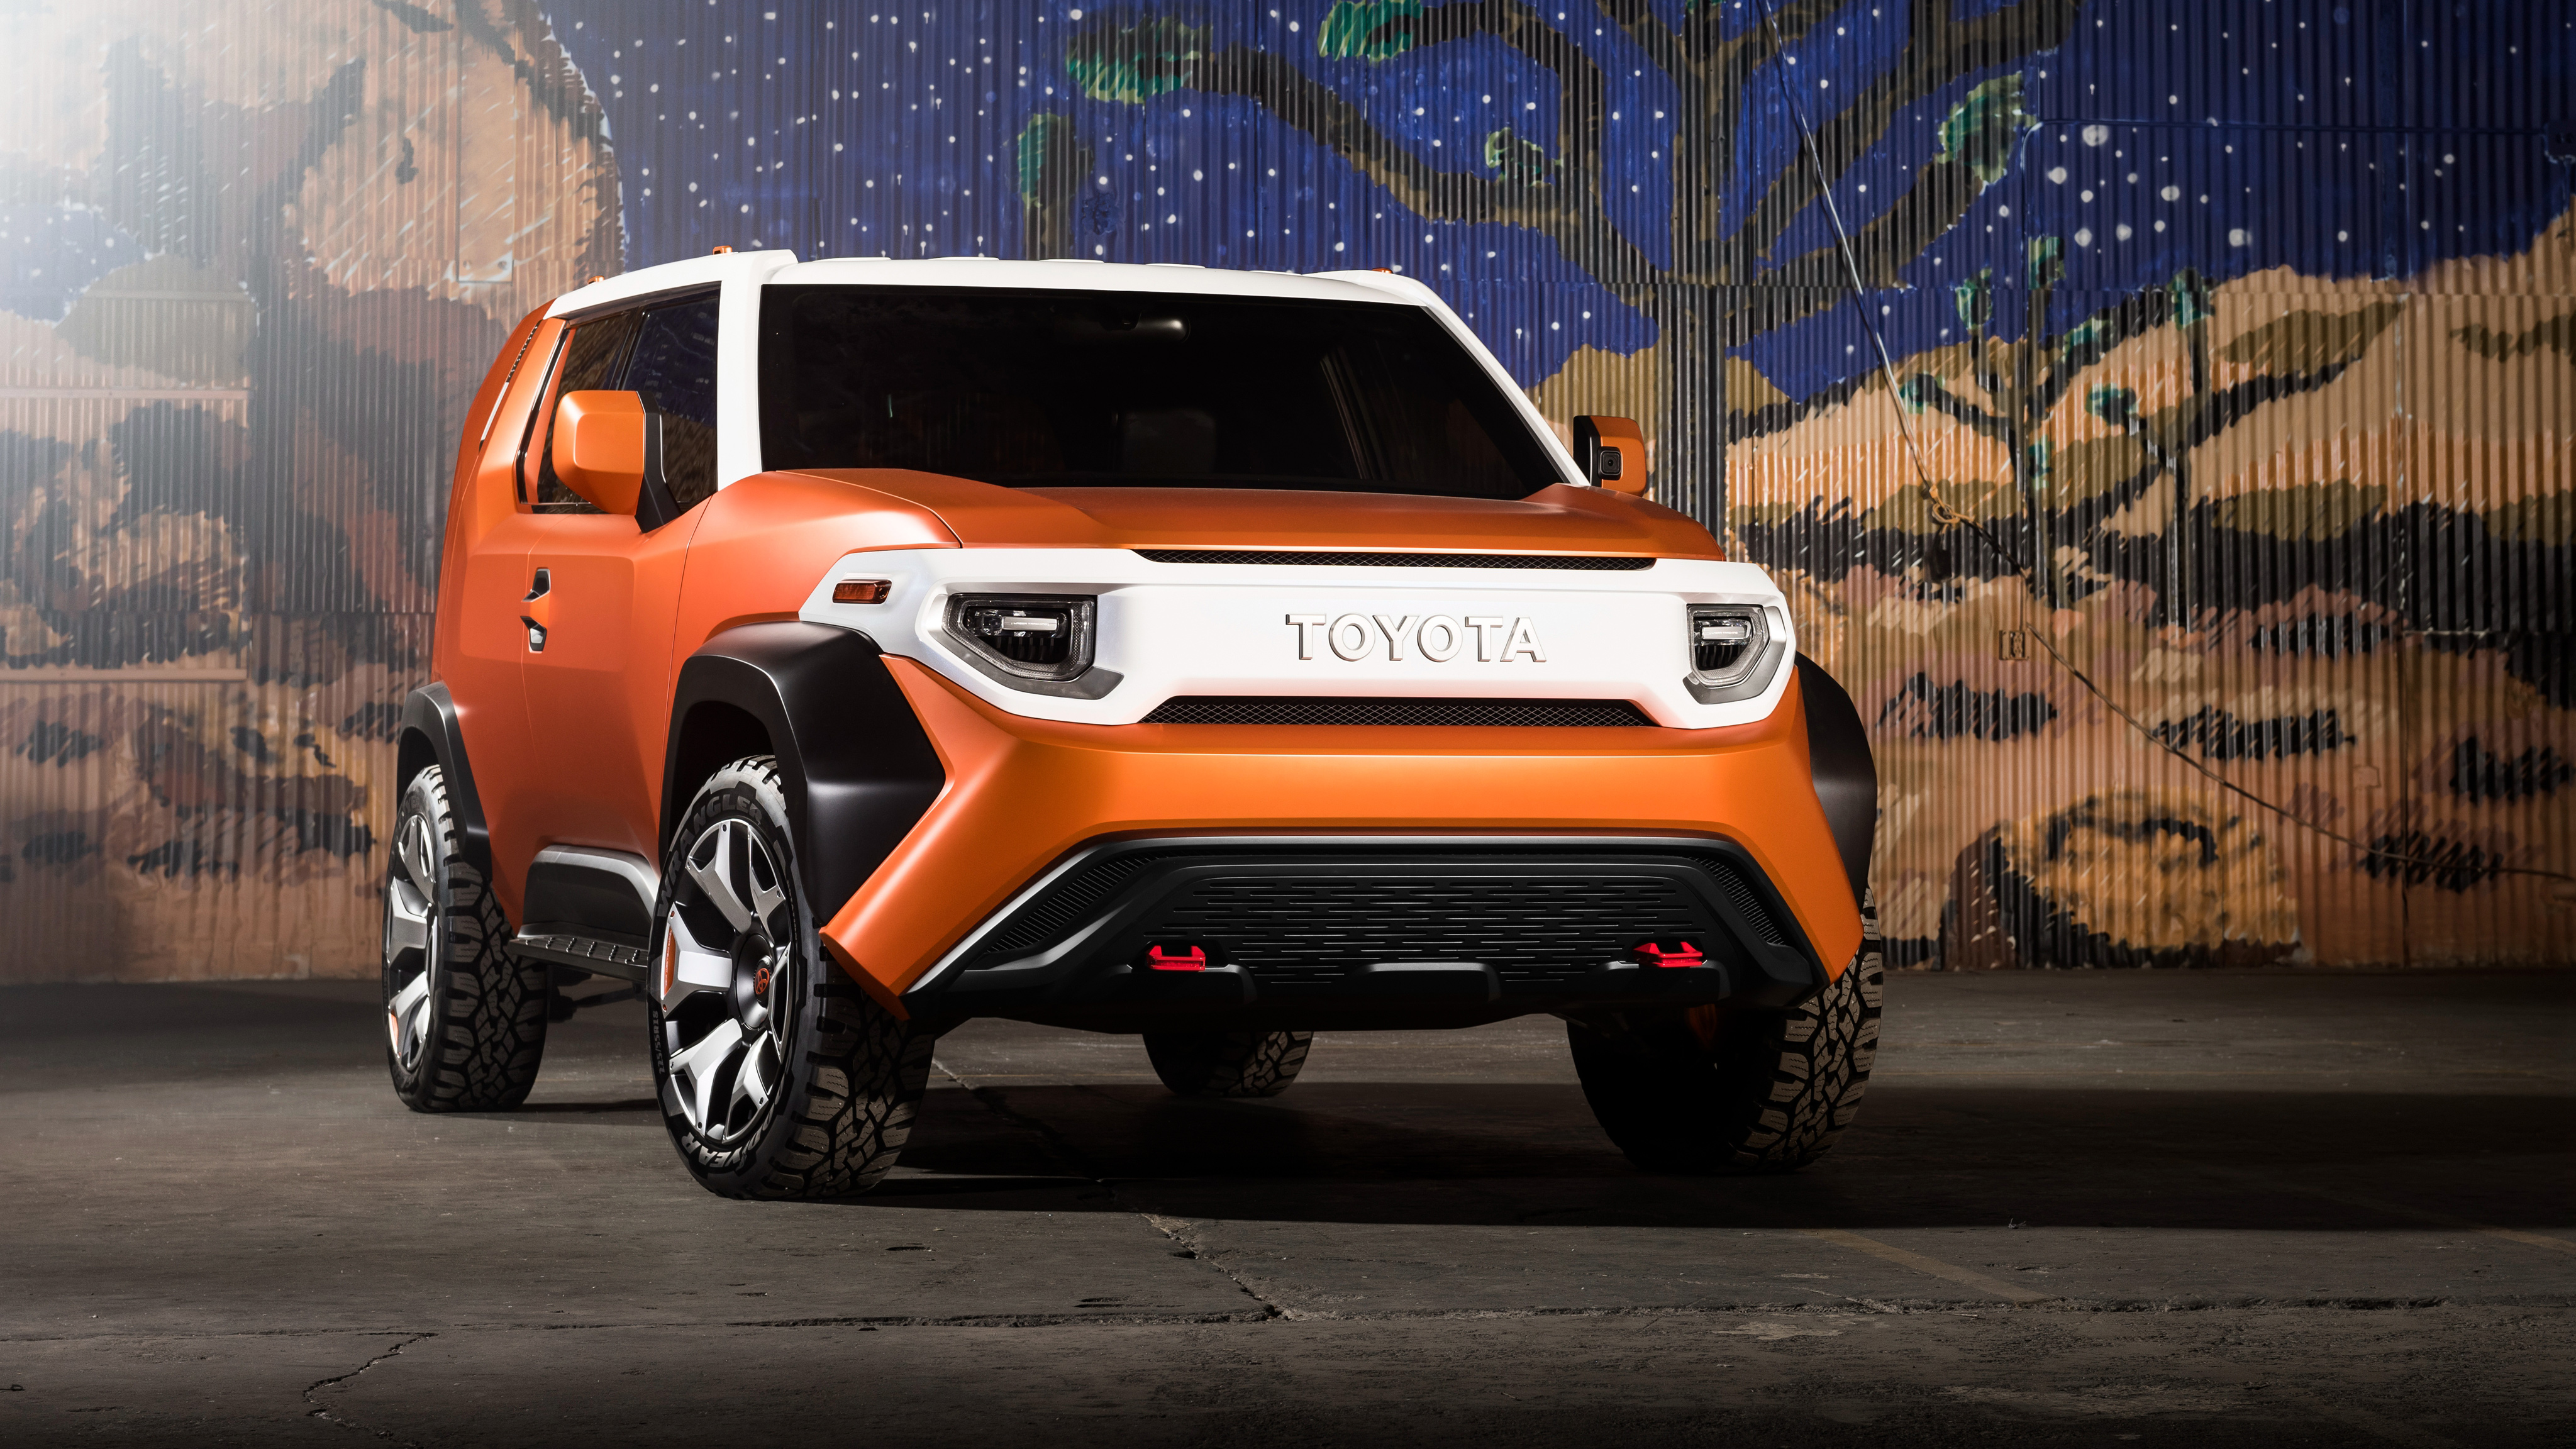 Toyota FT 4X Concept SUV Wallpaper | HD Car Wallpapers ...